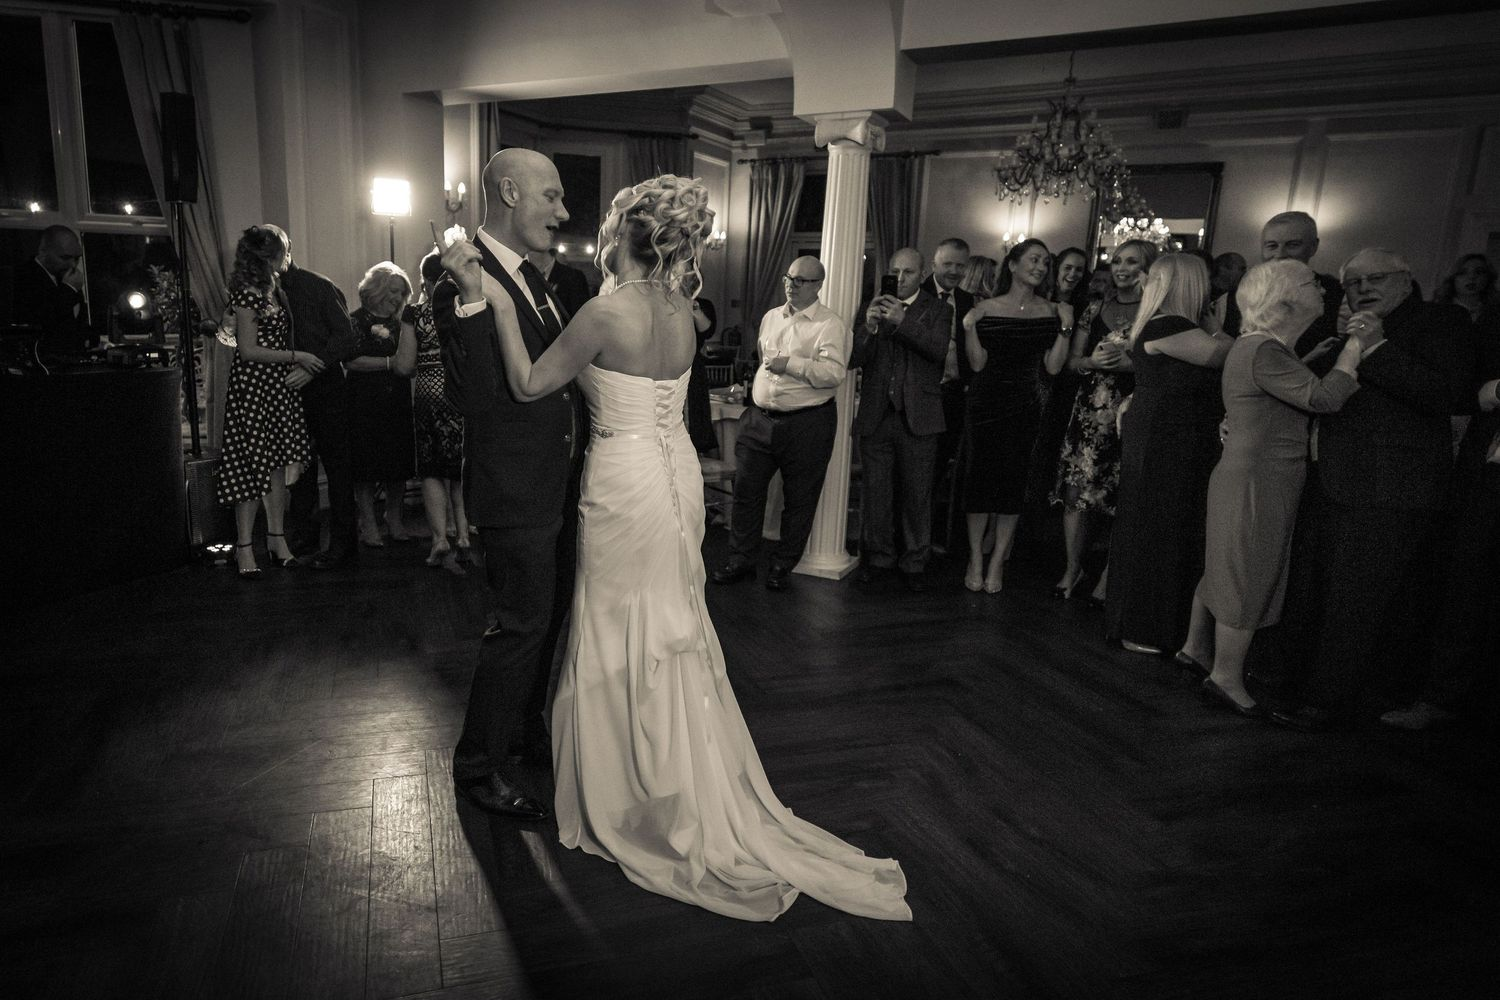 black and white shot of the bride and groom during their first dance watched by their guests